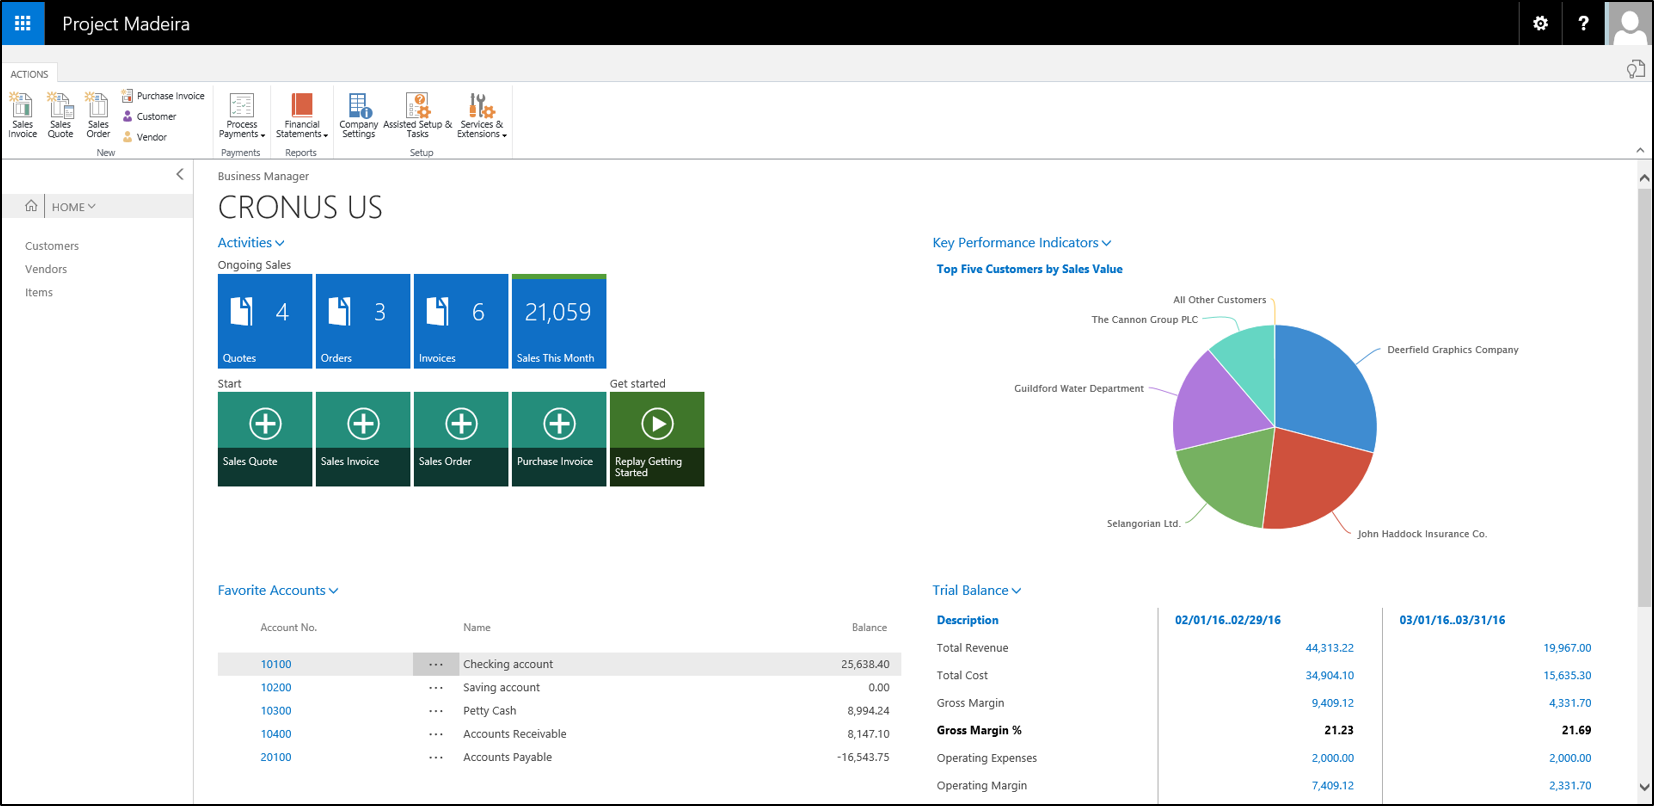 Microsoft Project Madeira Erp Blog